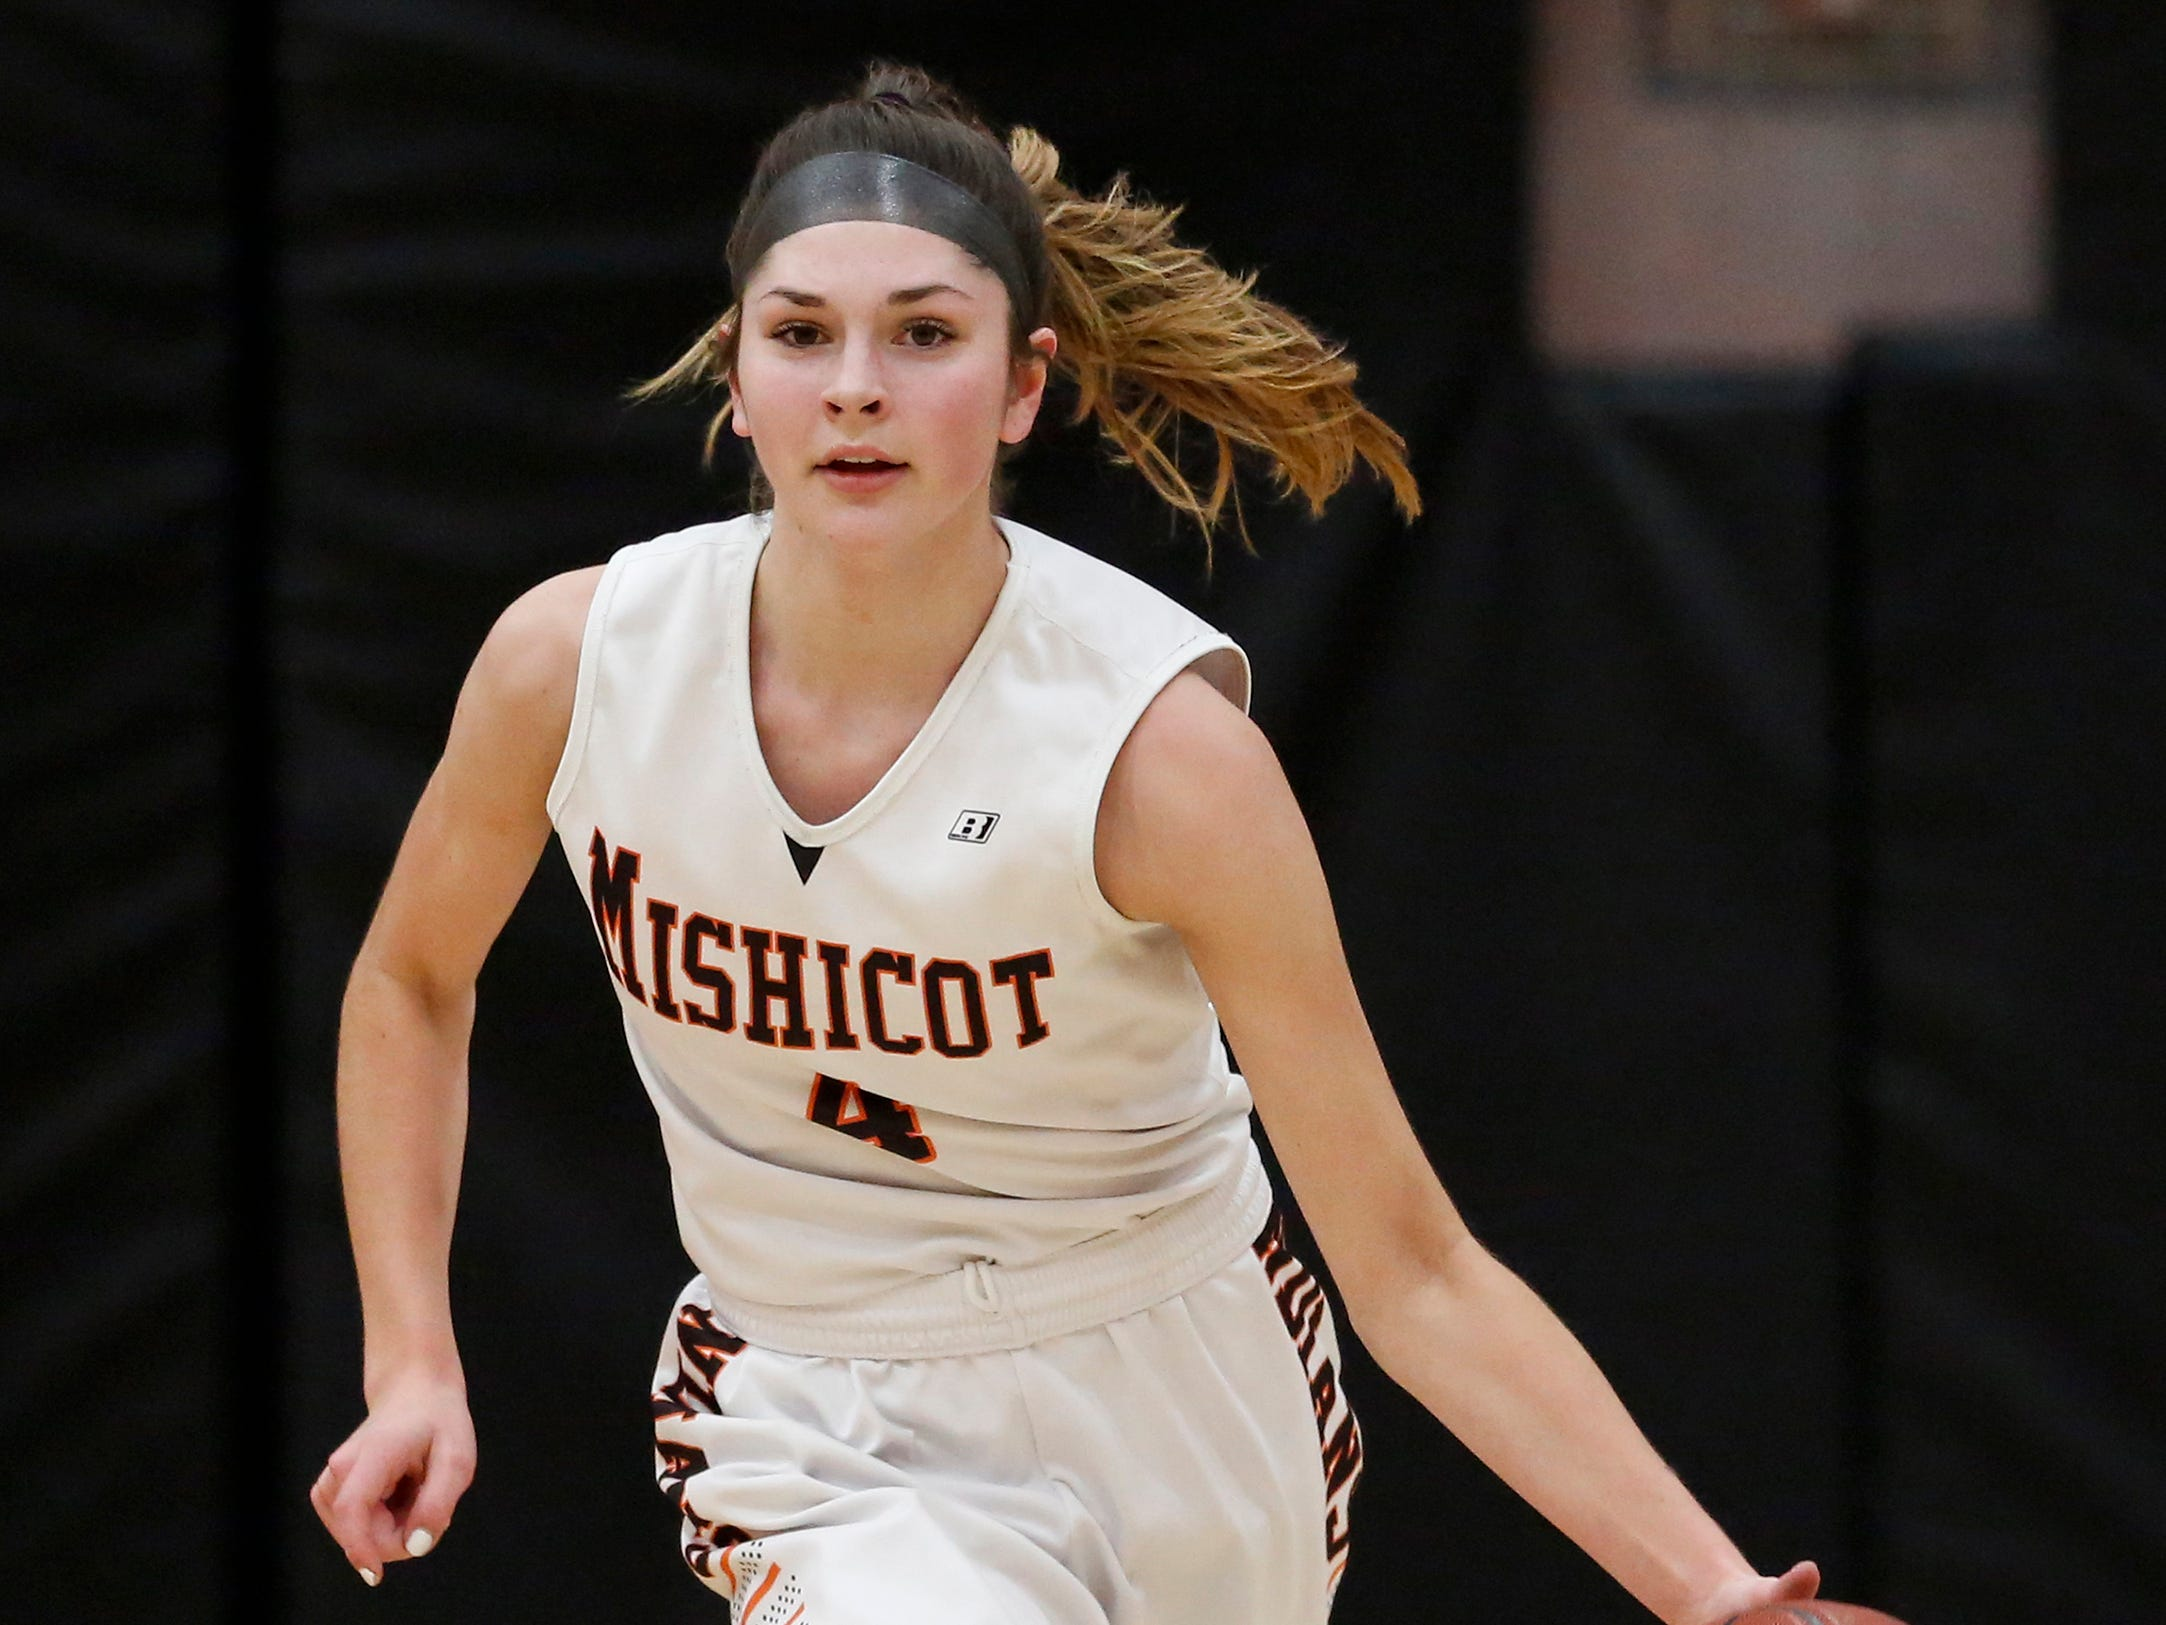 Mishicot's Desiree Kleiman (4) takes the ball down court against Sheboygan Area Lutheran during a Big East Conference matchup at Mishicot High School Friday, January 11, 2019, in Mishicot, Wis. Joshua Clark/USA TODAY NETWORK-Wisconsin